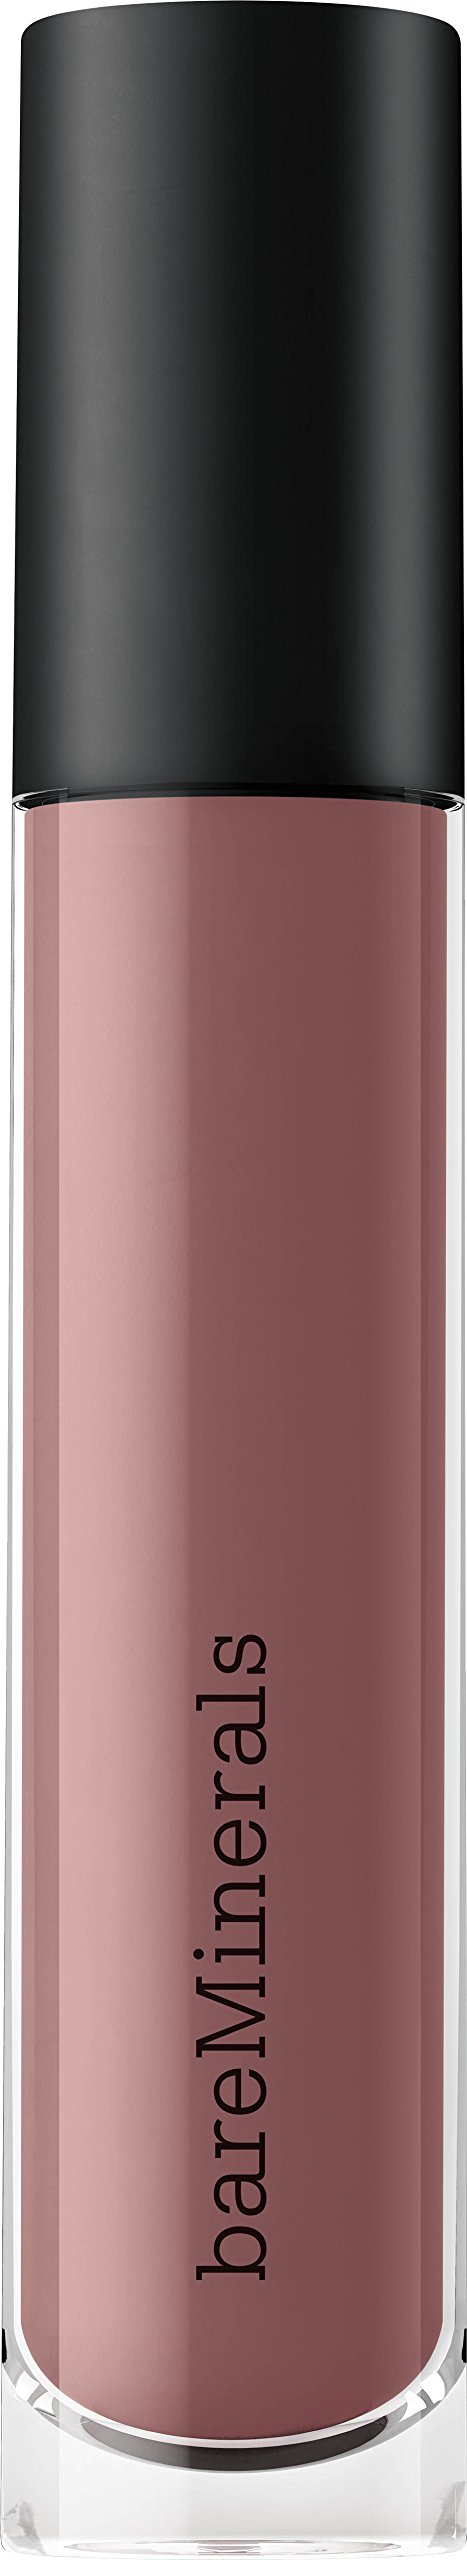 Something to Talk Apout 4-Piece Mini Moxie Plumping Lipgloss Collection by bareMinerals #9